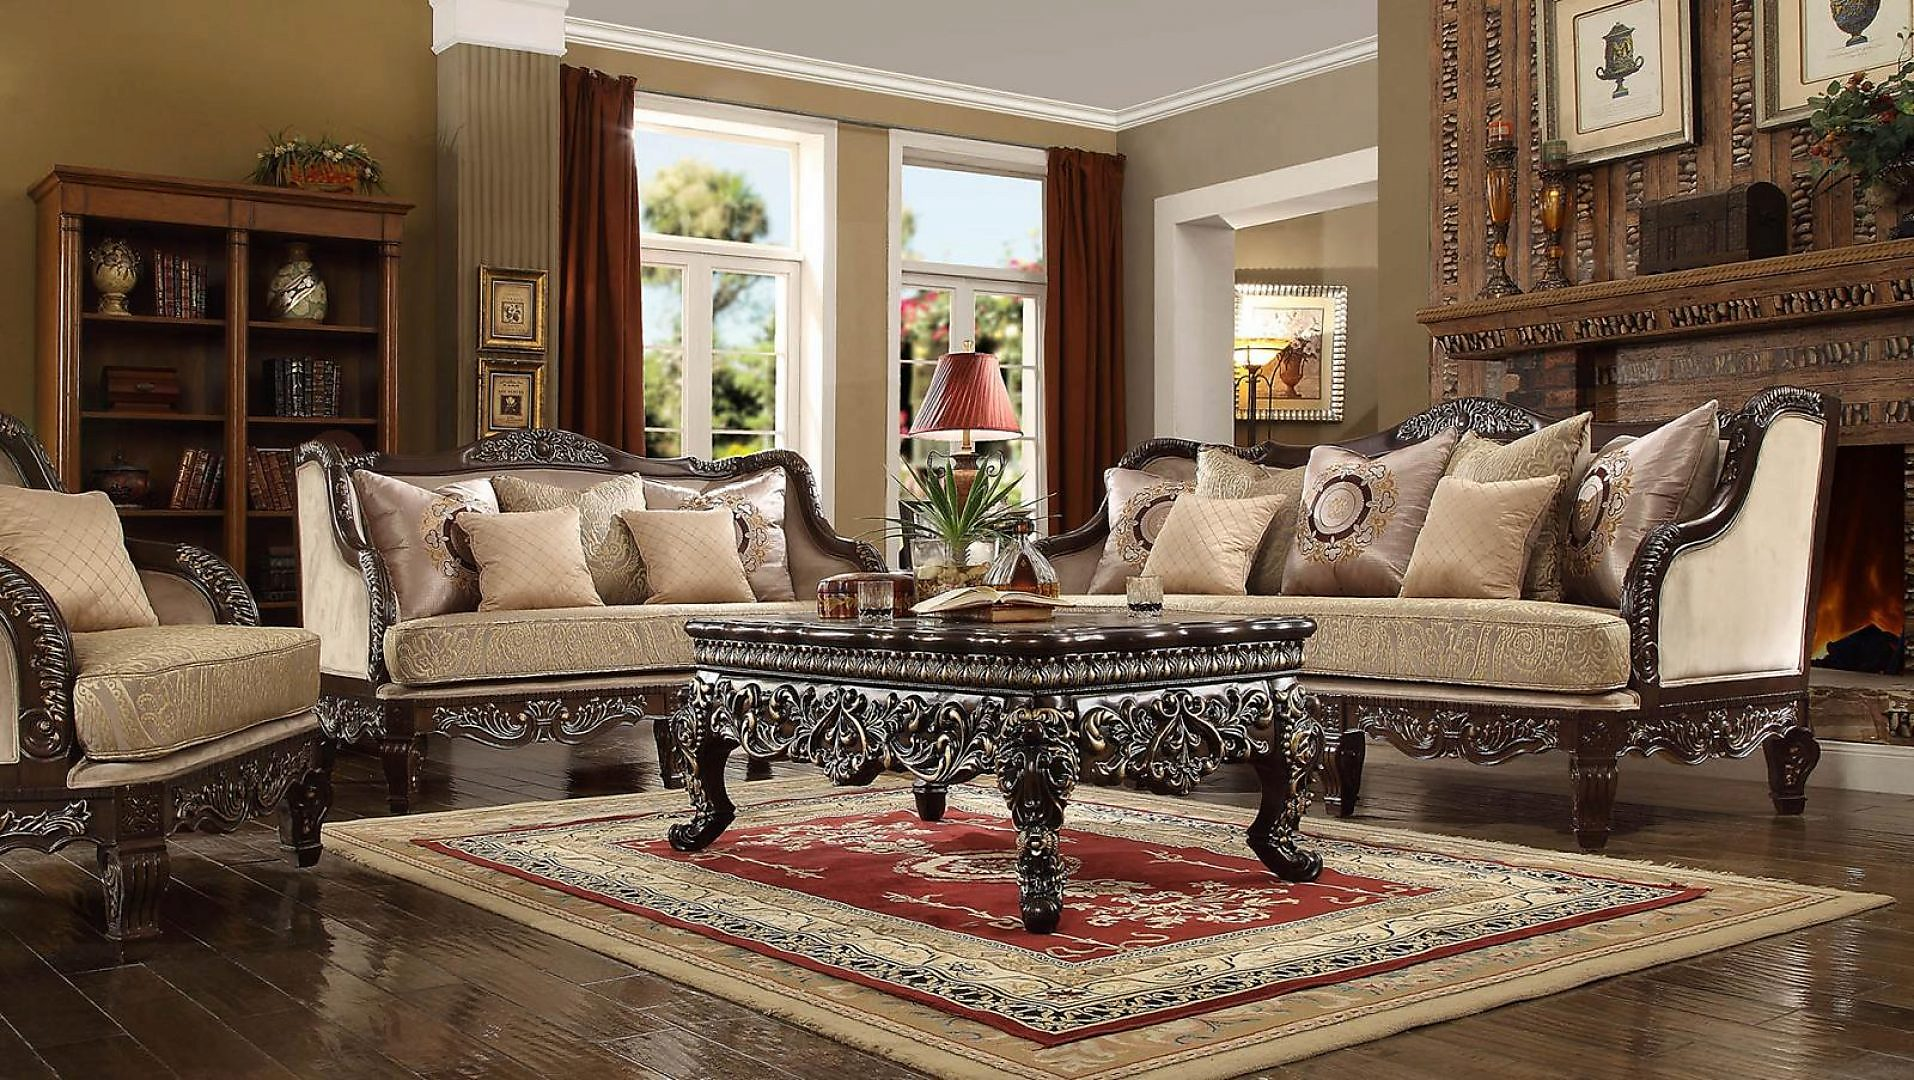 Traditional HD-914 Living Room Set 5Pcs in Cappuccino by Homey Design